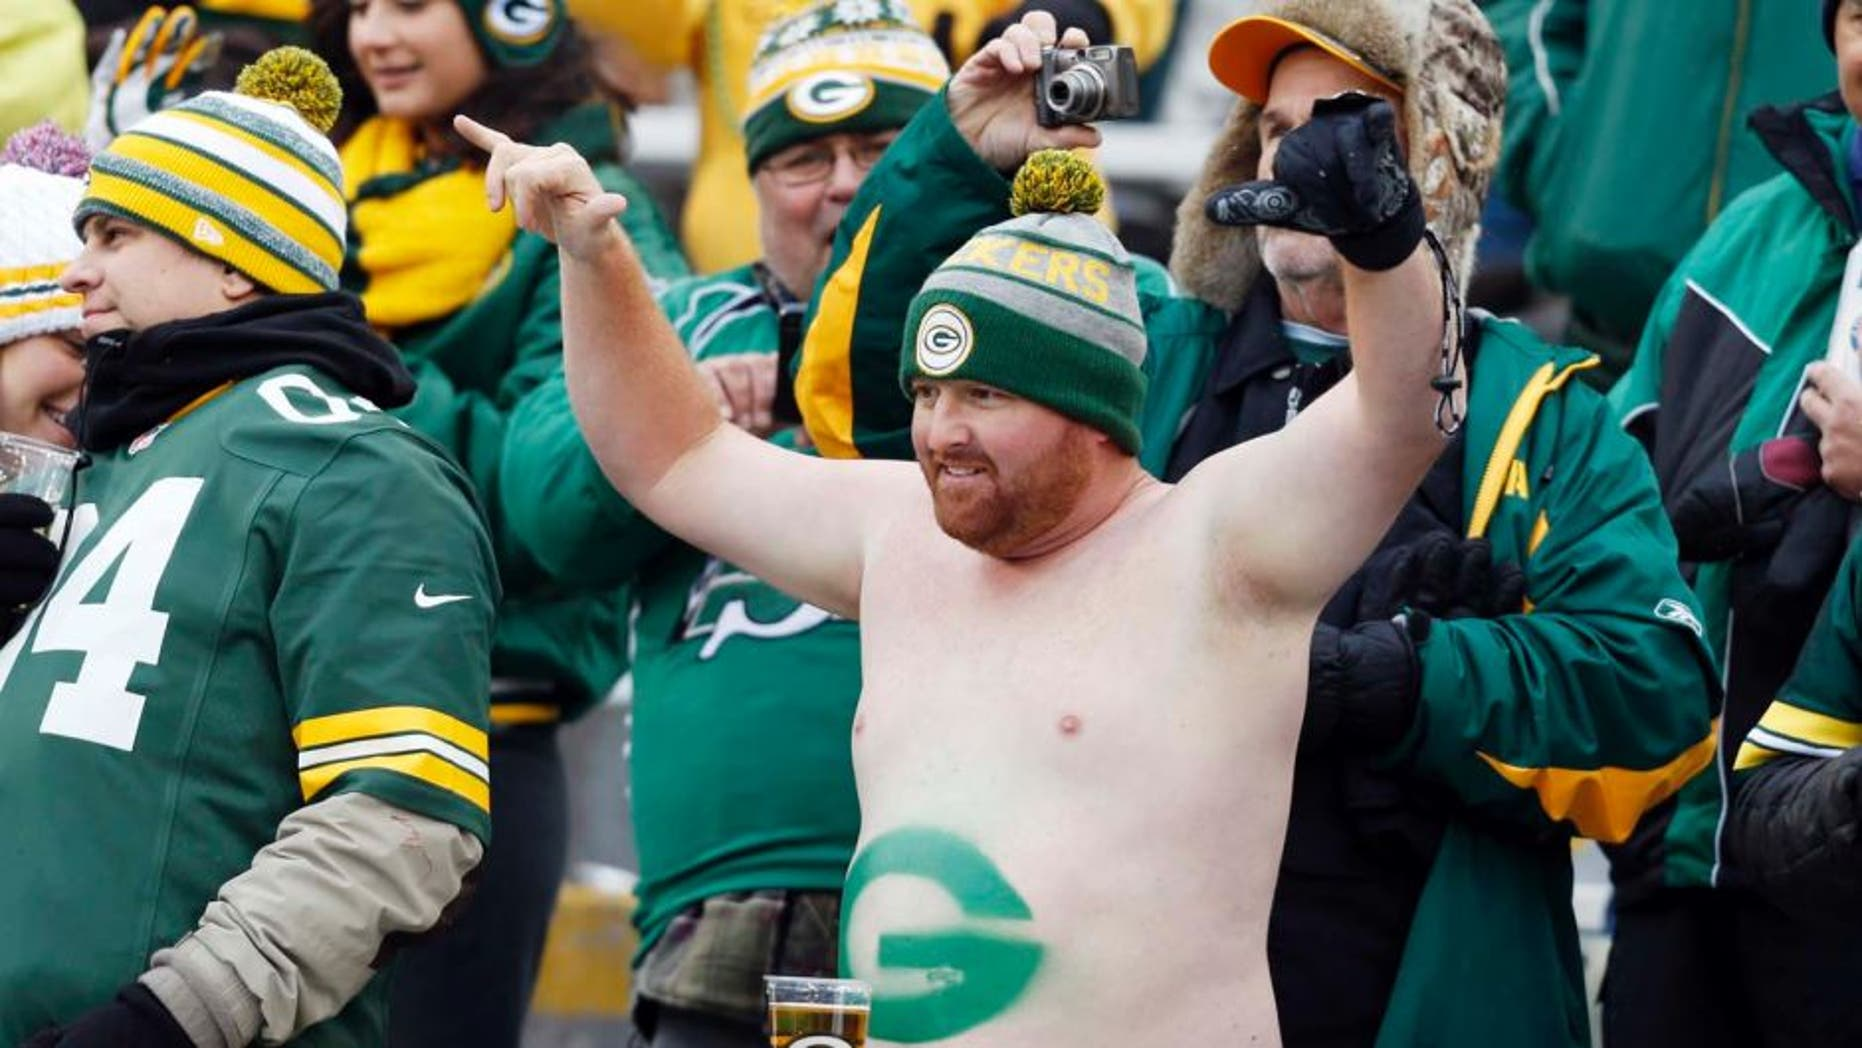 Green Bay Packers fan Cody Drinkle takes his shirt off in the stands during the first half.